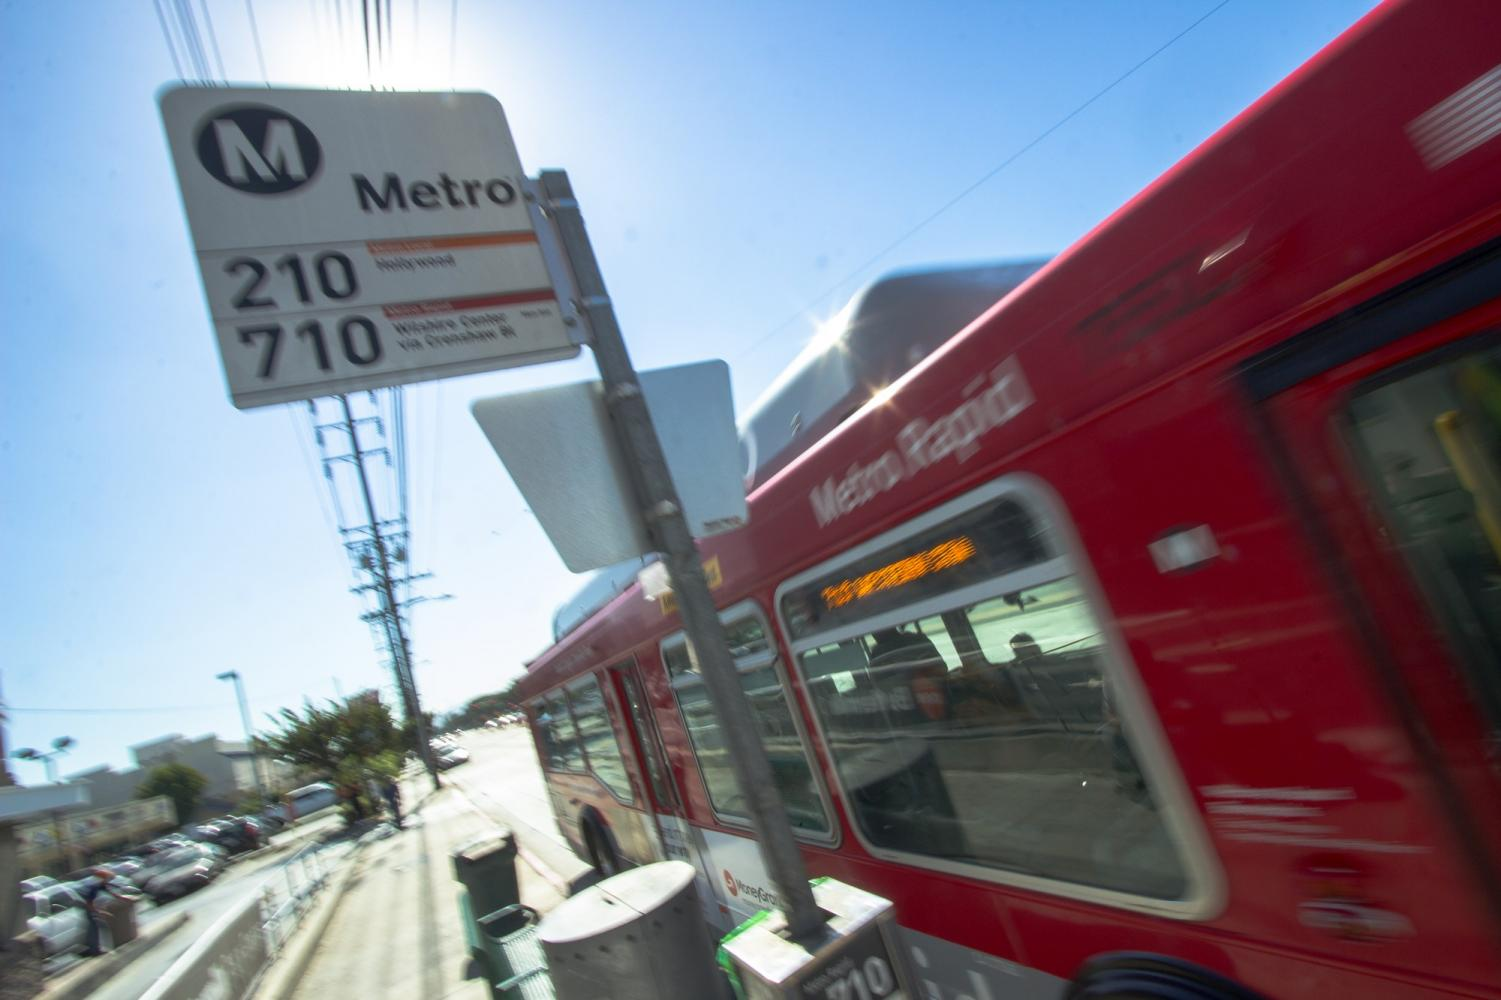 Metro-U pass offers students discounted transit prices